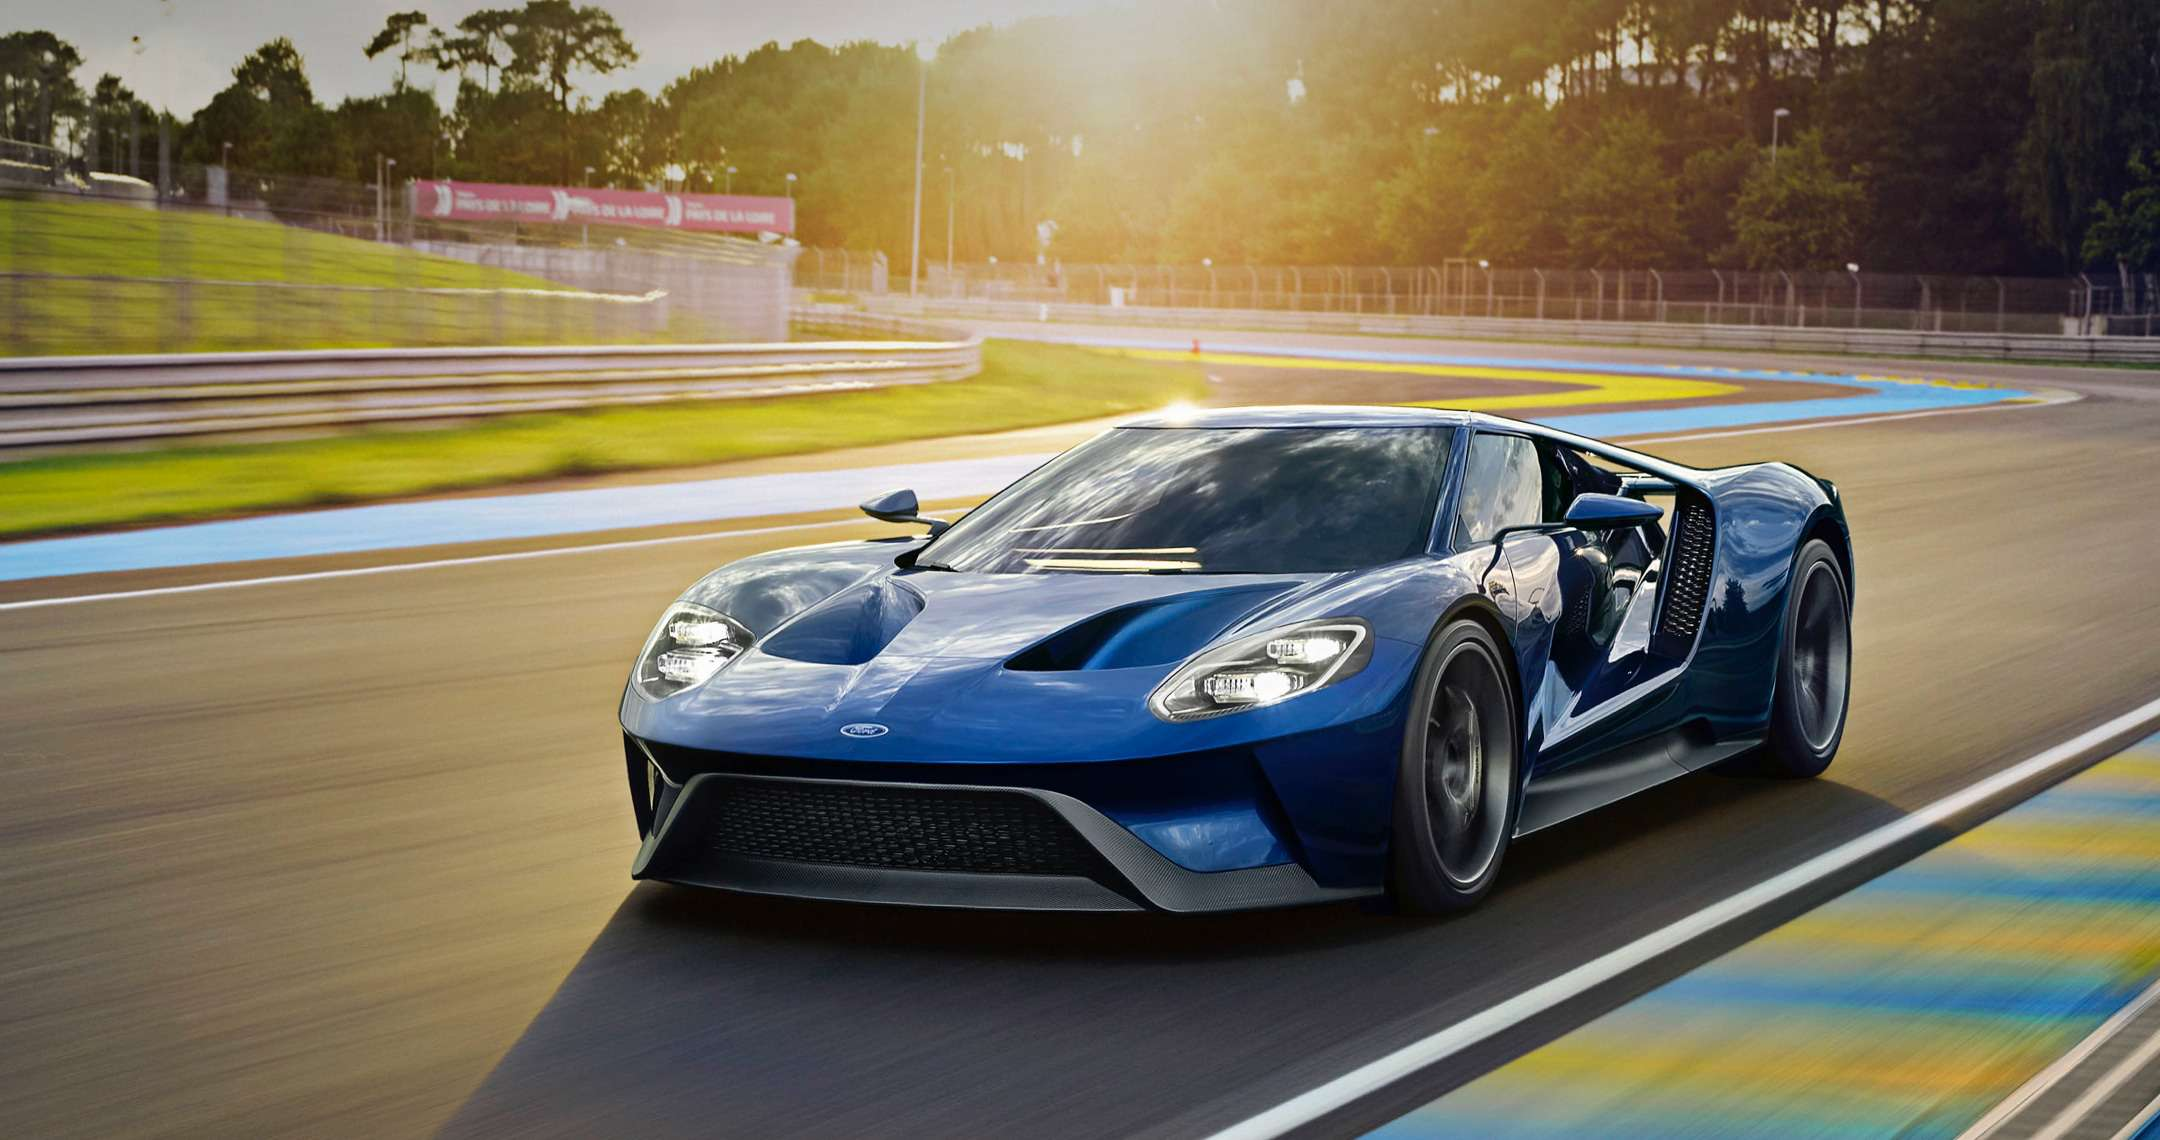 Ford Gt Images Ford Gt Supercar Hd Wallpaper And Background Photos